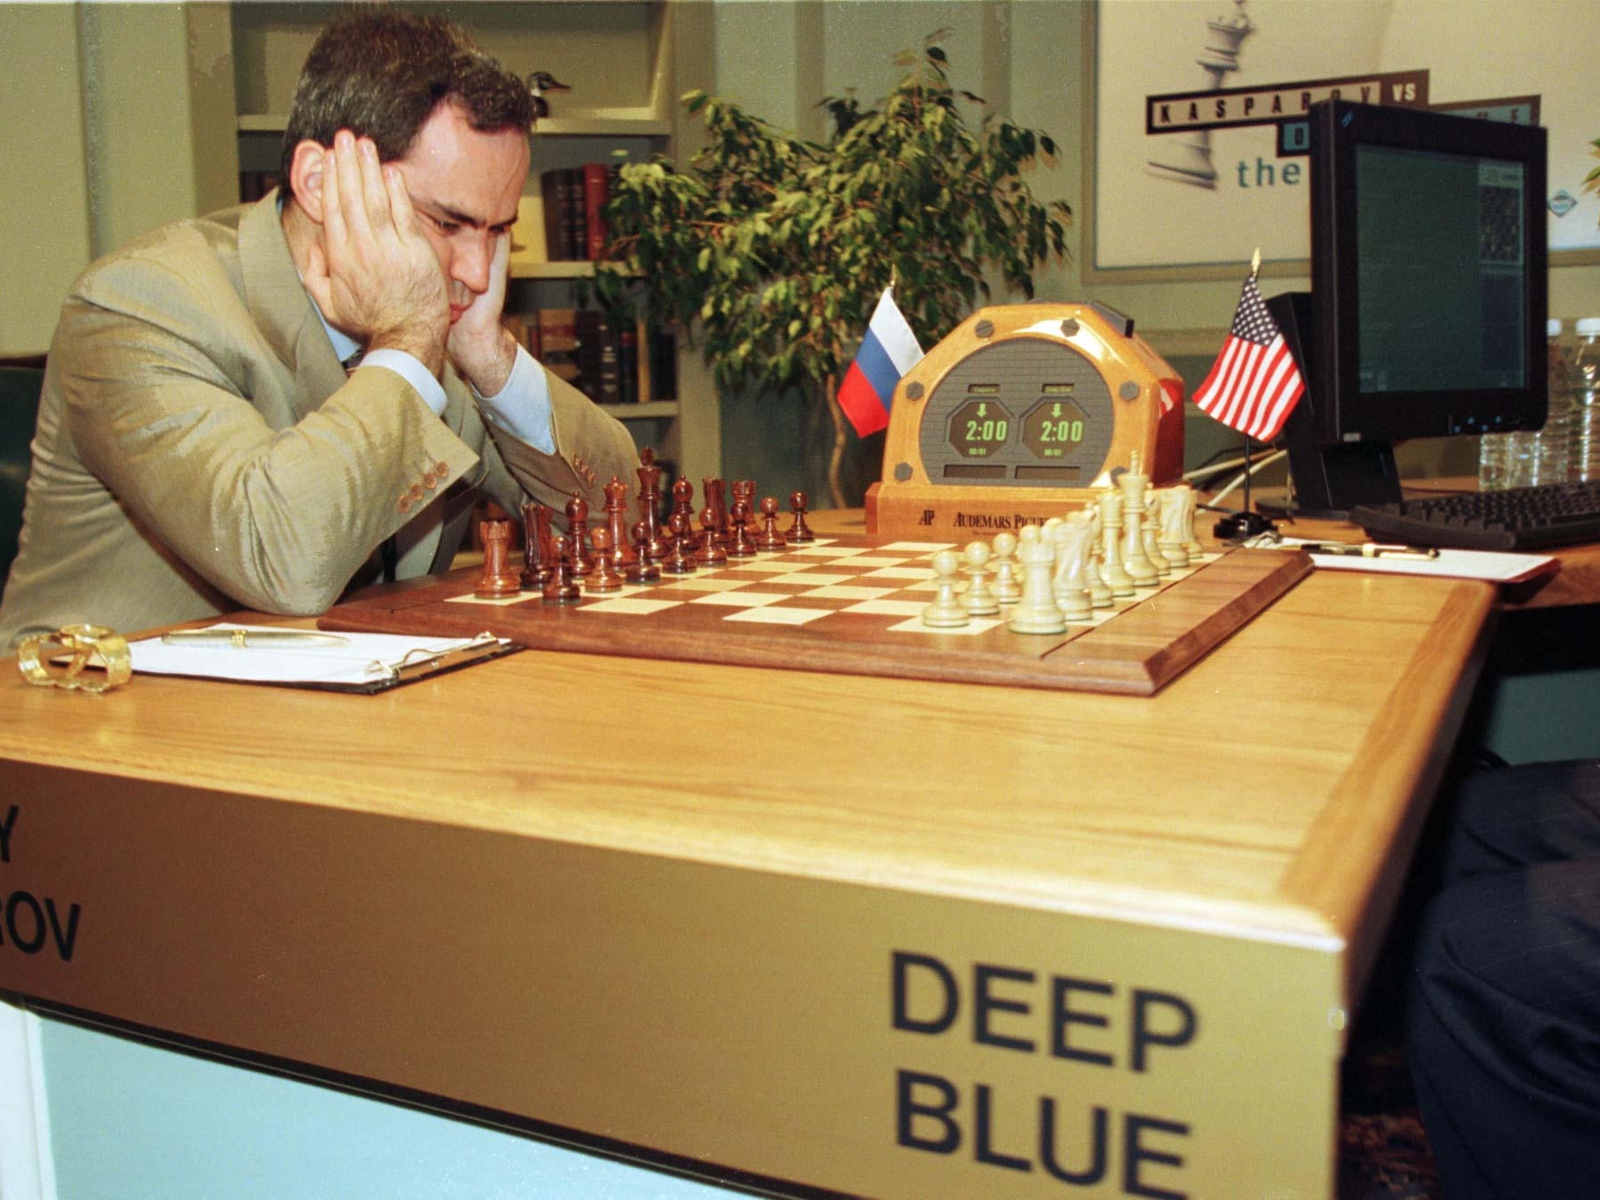 Deep blue playing chess against Garry